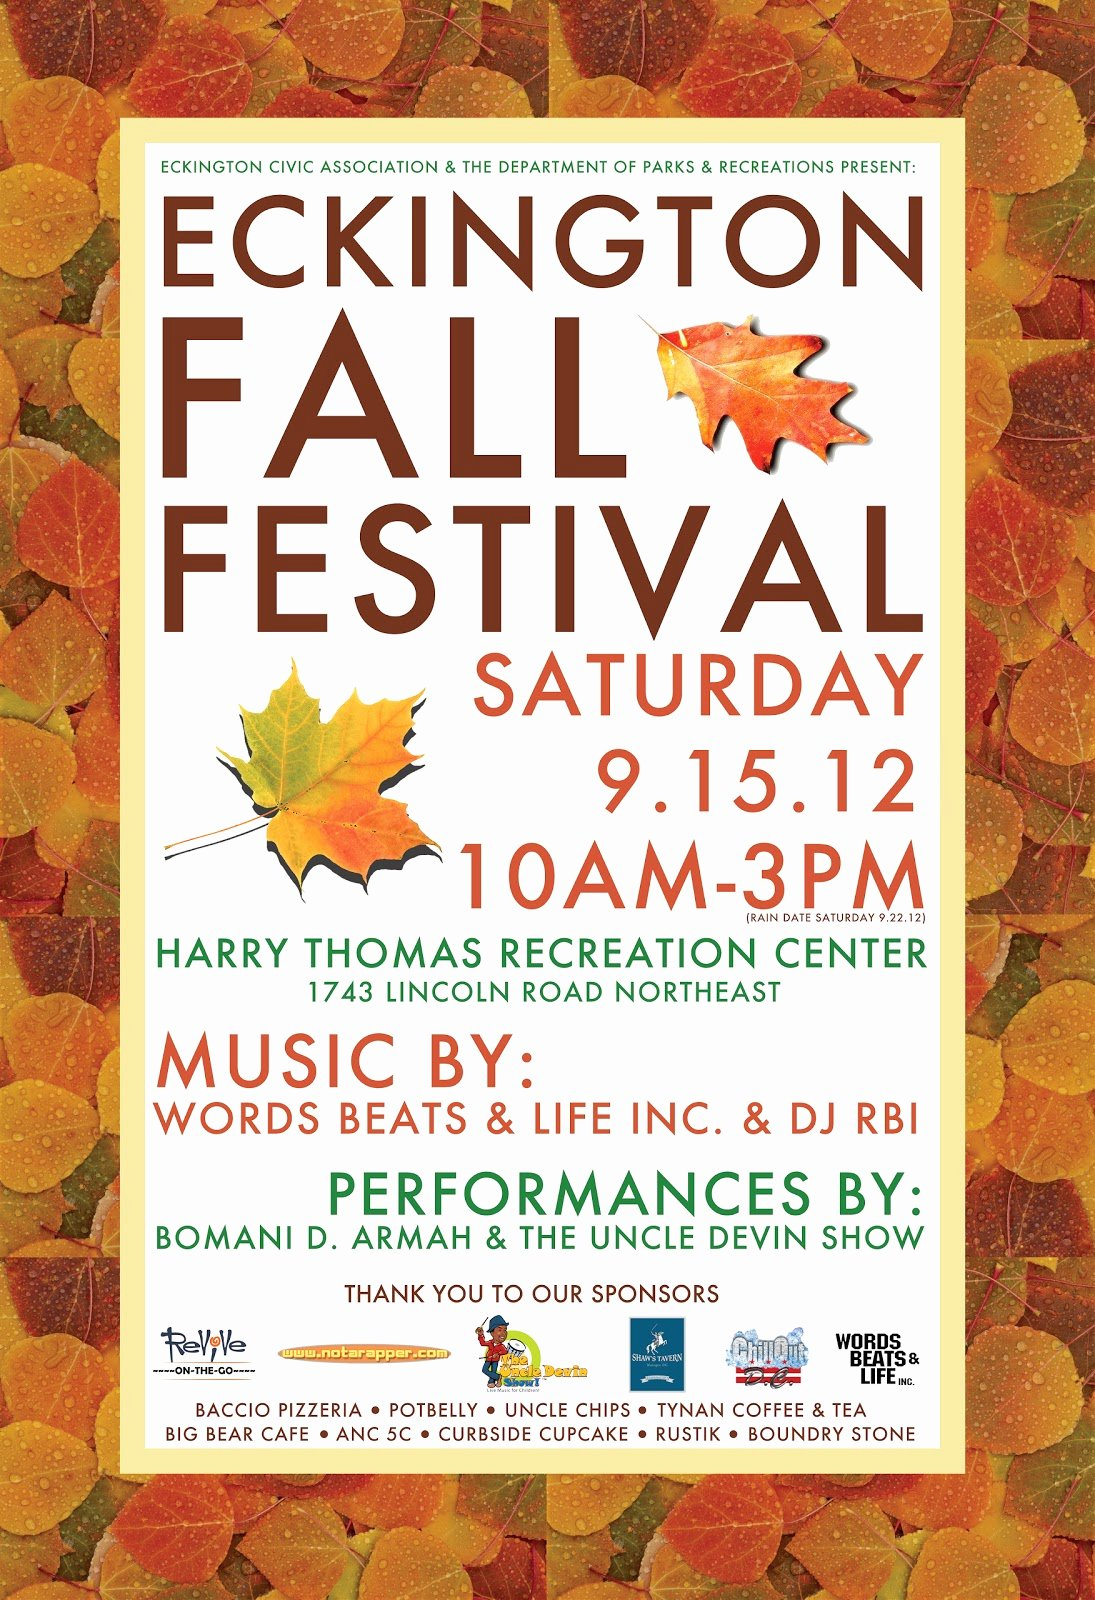 Fall Festival Flyer Template Best Of Bloomingdale today the Eckington Fall Festival at the